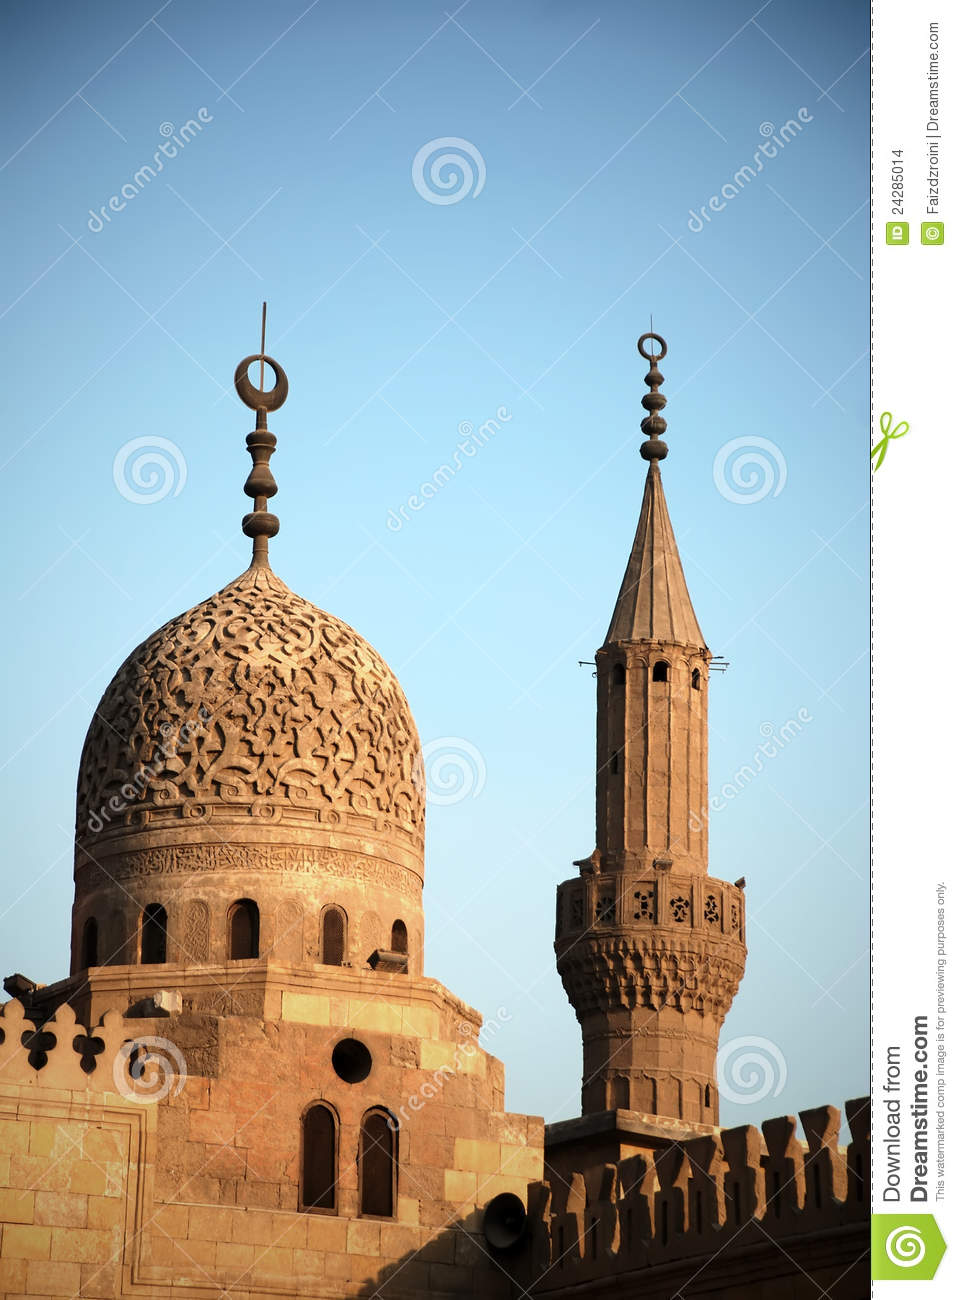 Non Muslim Perspective On The Revolution Of Imam Hussain: The Dome And Minaret Of Al-Azhar Mosque In Cairo Stock